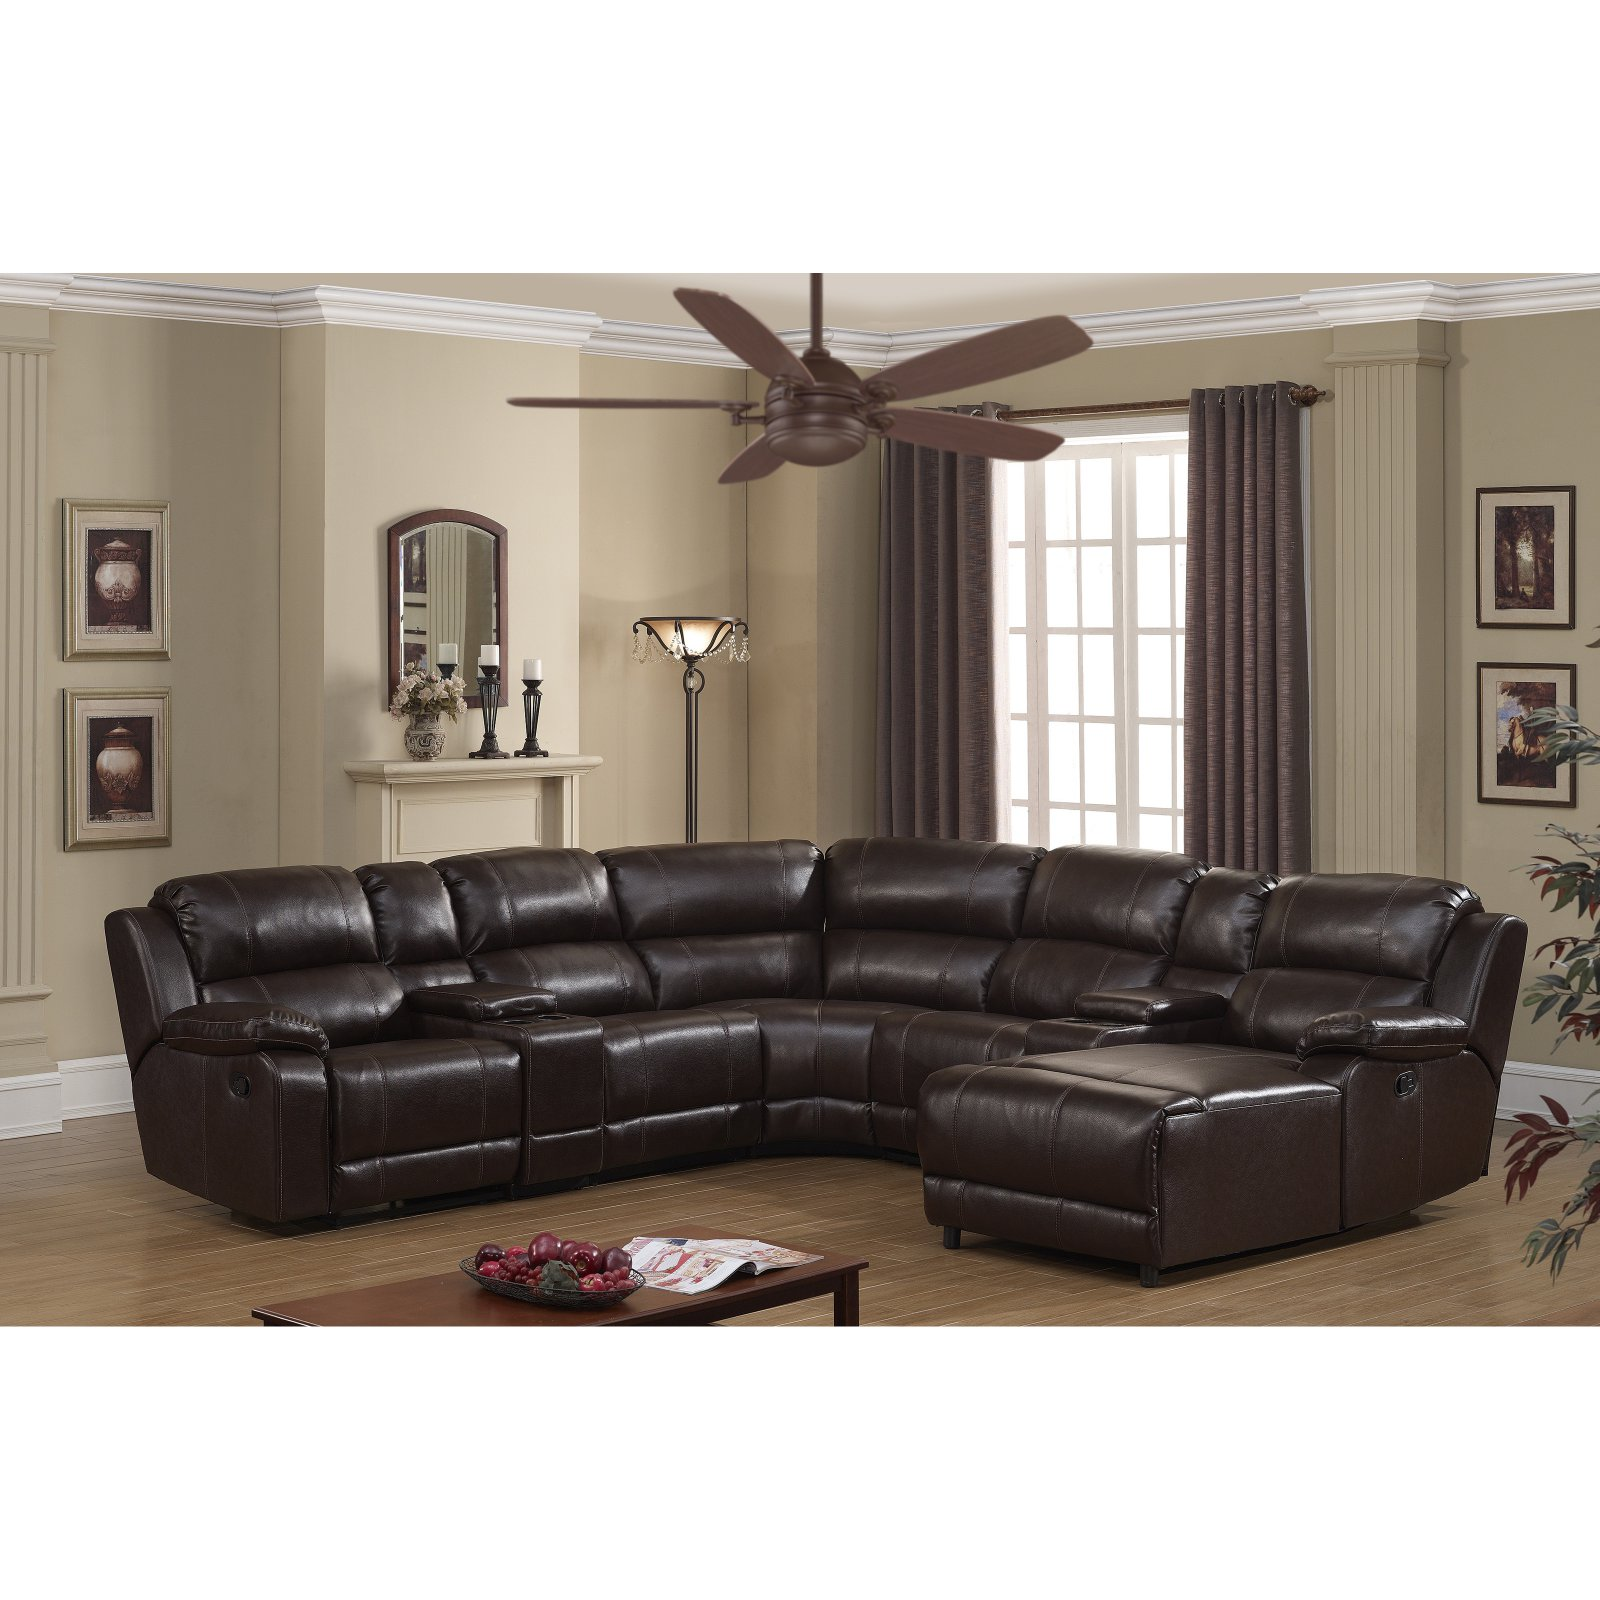 AC Pacific Colton 7 Piece Sectional Sofa Set